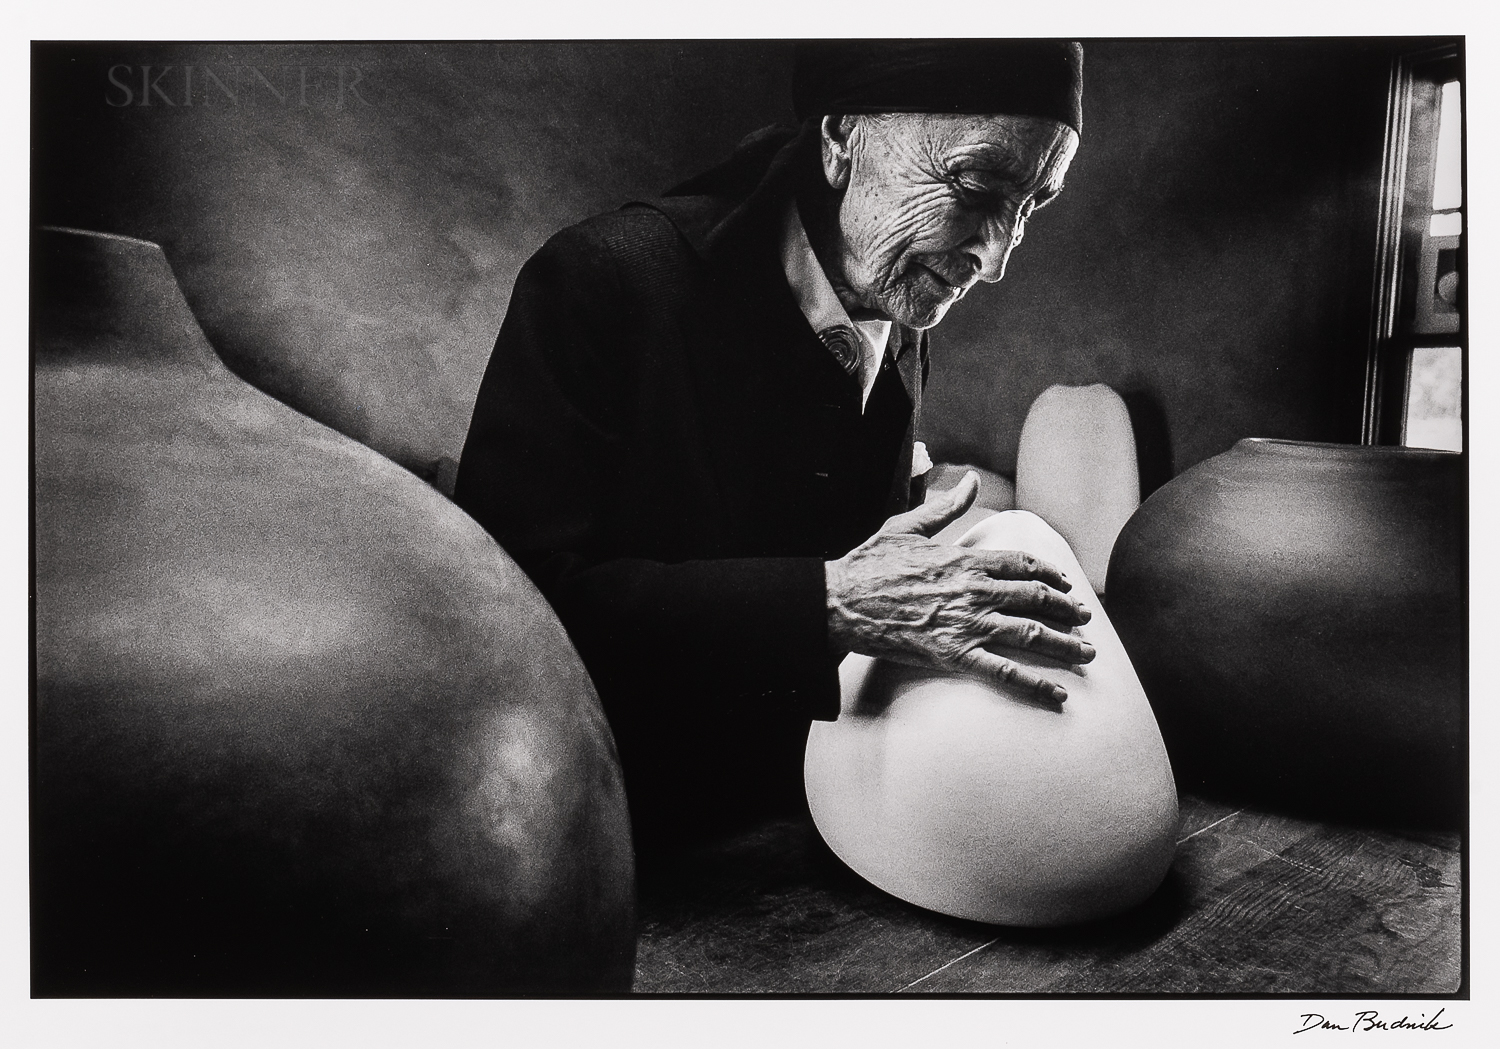 Dan Budnik (American, 1933-2020)    Georgia O'Keeffe at the Ghost Ranch with Pots by Juan Hamilton, New Mexico